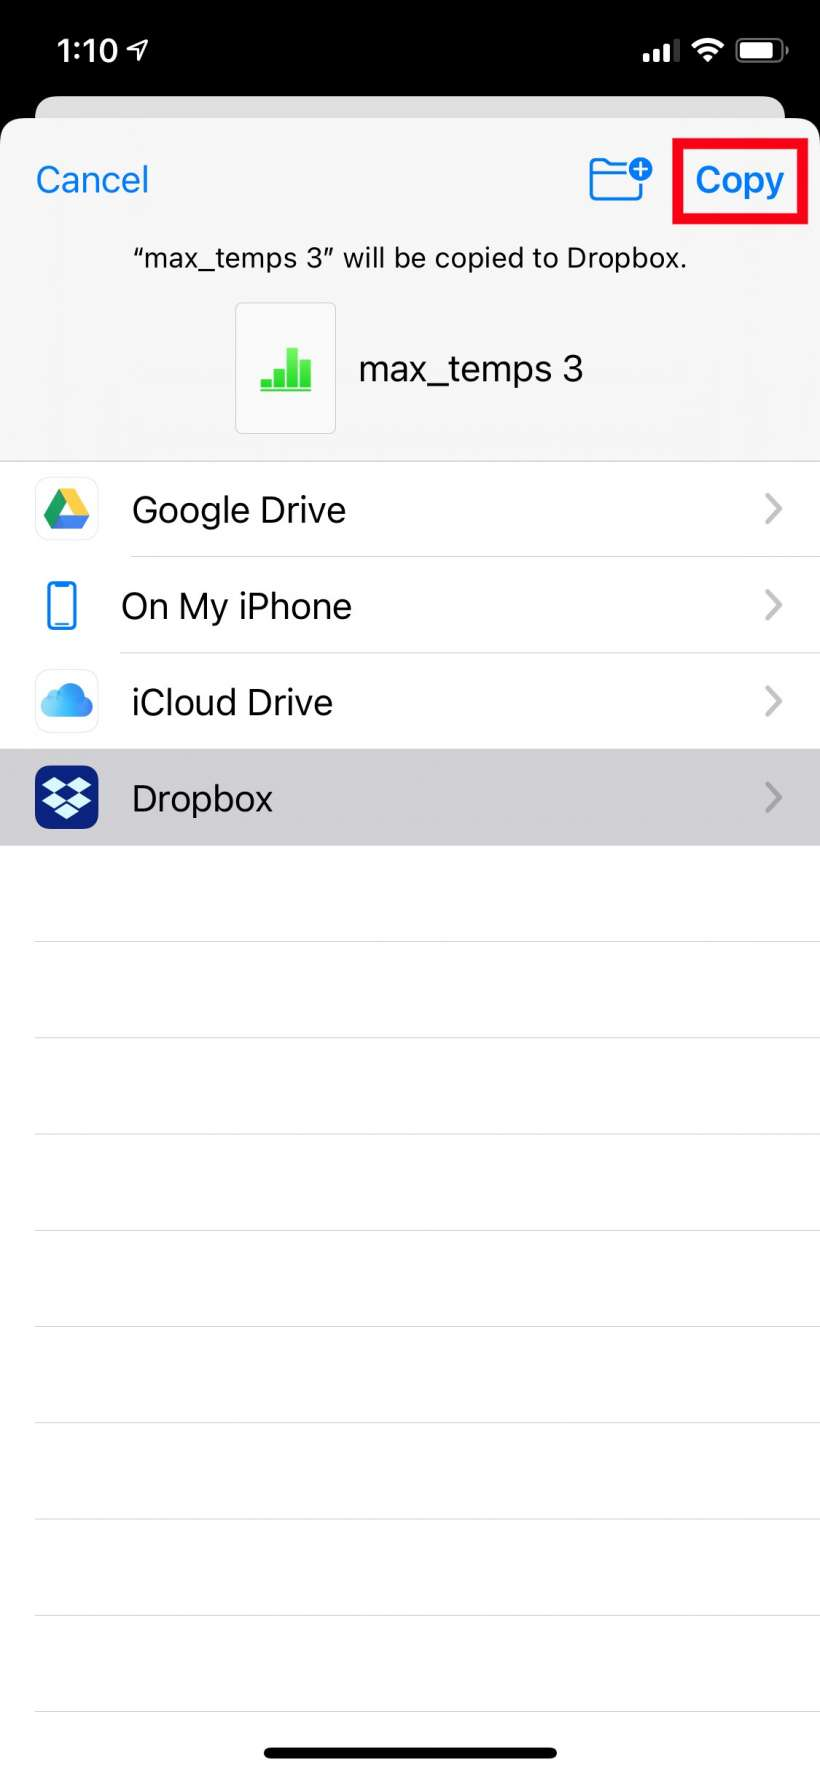 How to use Dropbox, Google Drive, OneDrive, Amazon Drive and other cloud storage services with the Files app on iPhone and iPad.